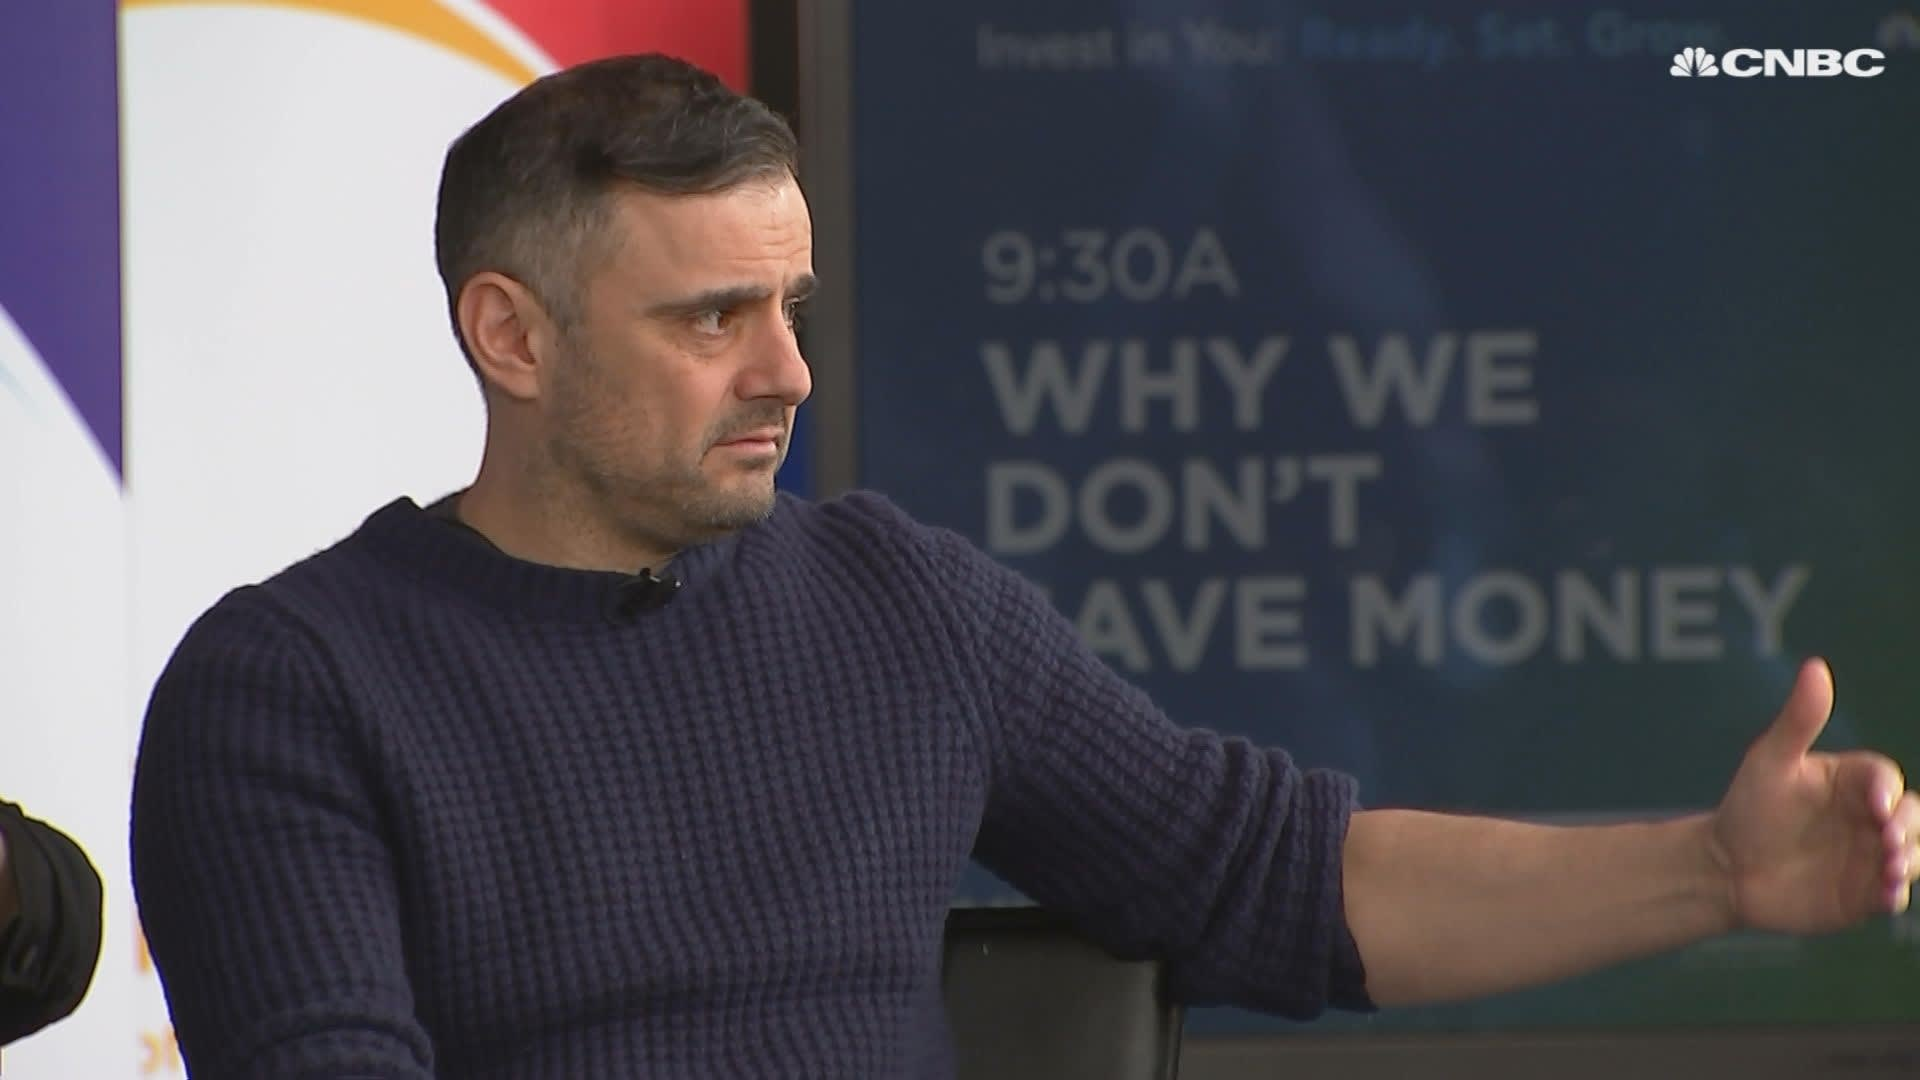 Gary Vaynerchuk: This side hustle can end debt and earn a struggling person up to $100,000 in income